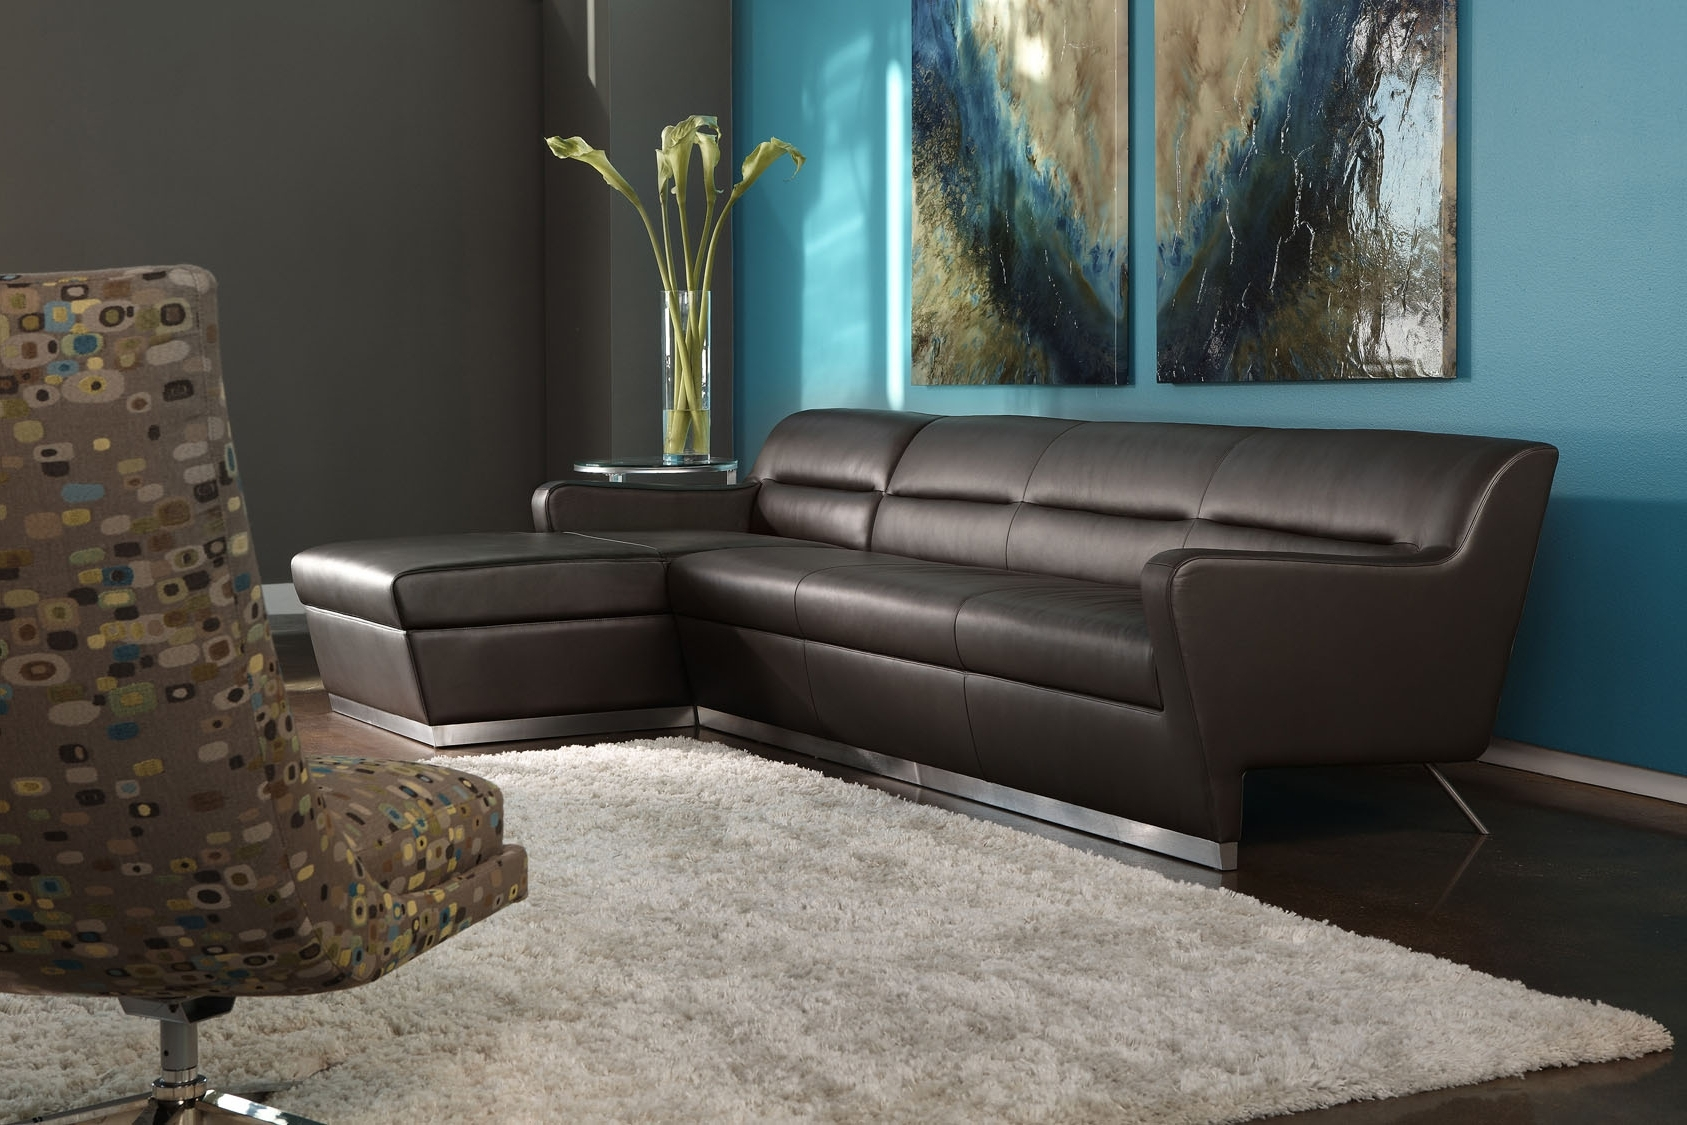 Niagara Sectional Sofas For Most Current American Leather Niagara Sectional Sofa (View 4 of 20)